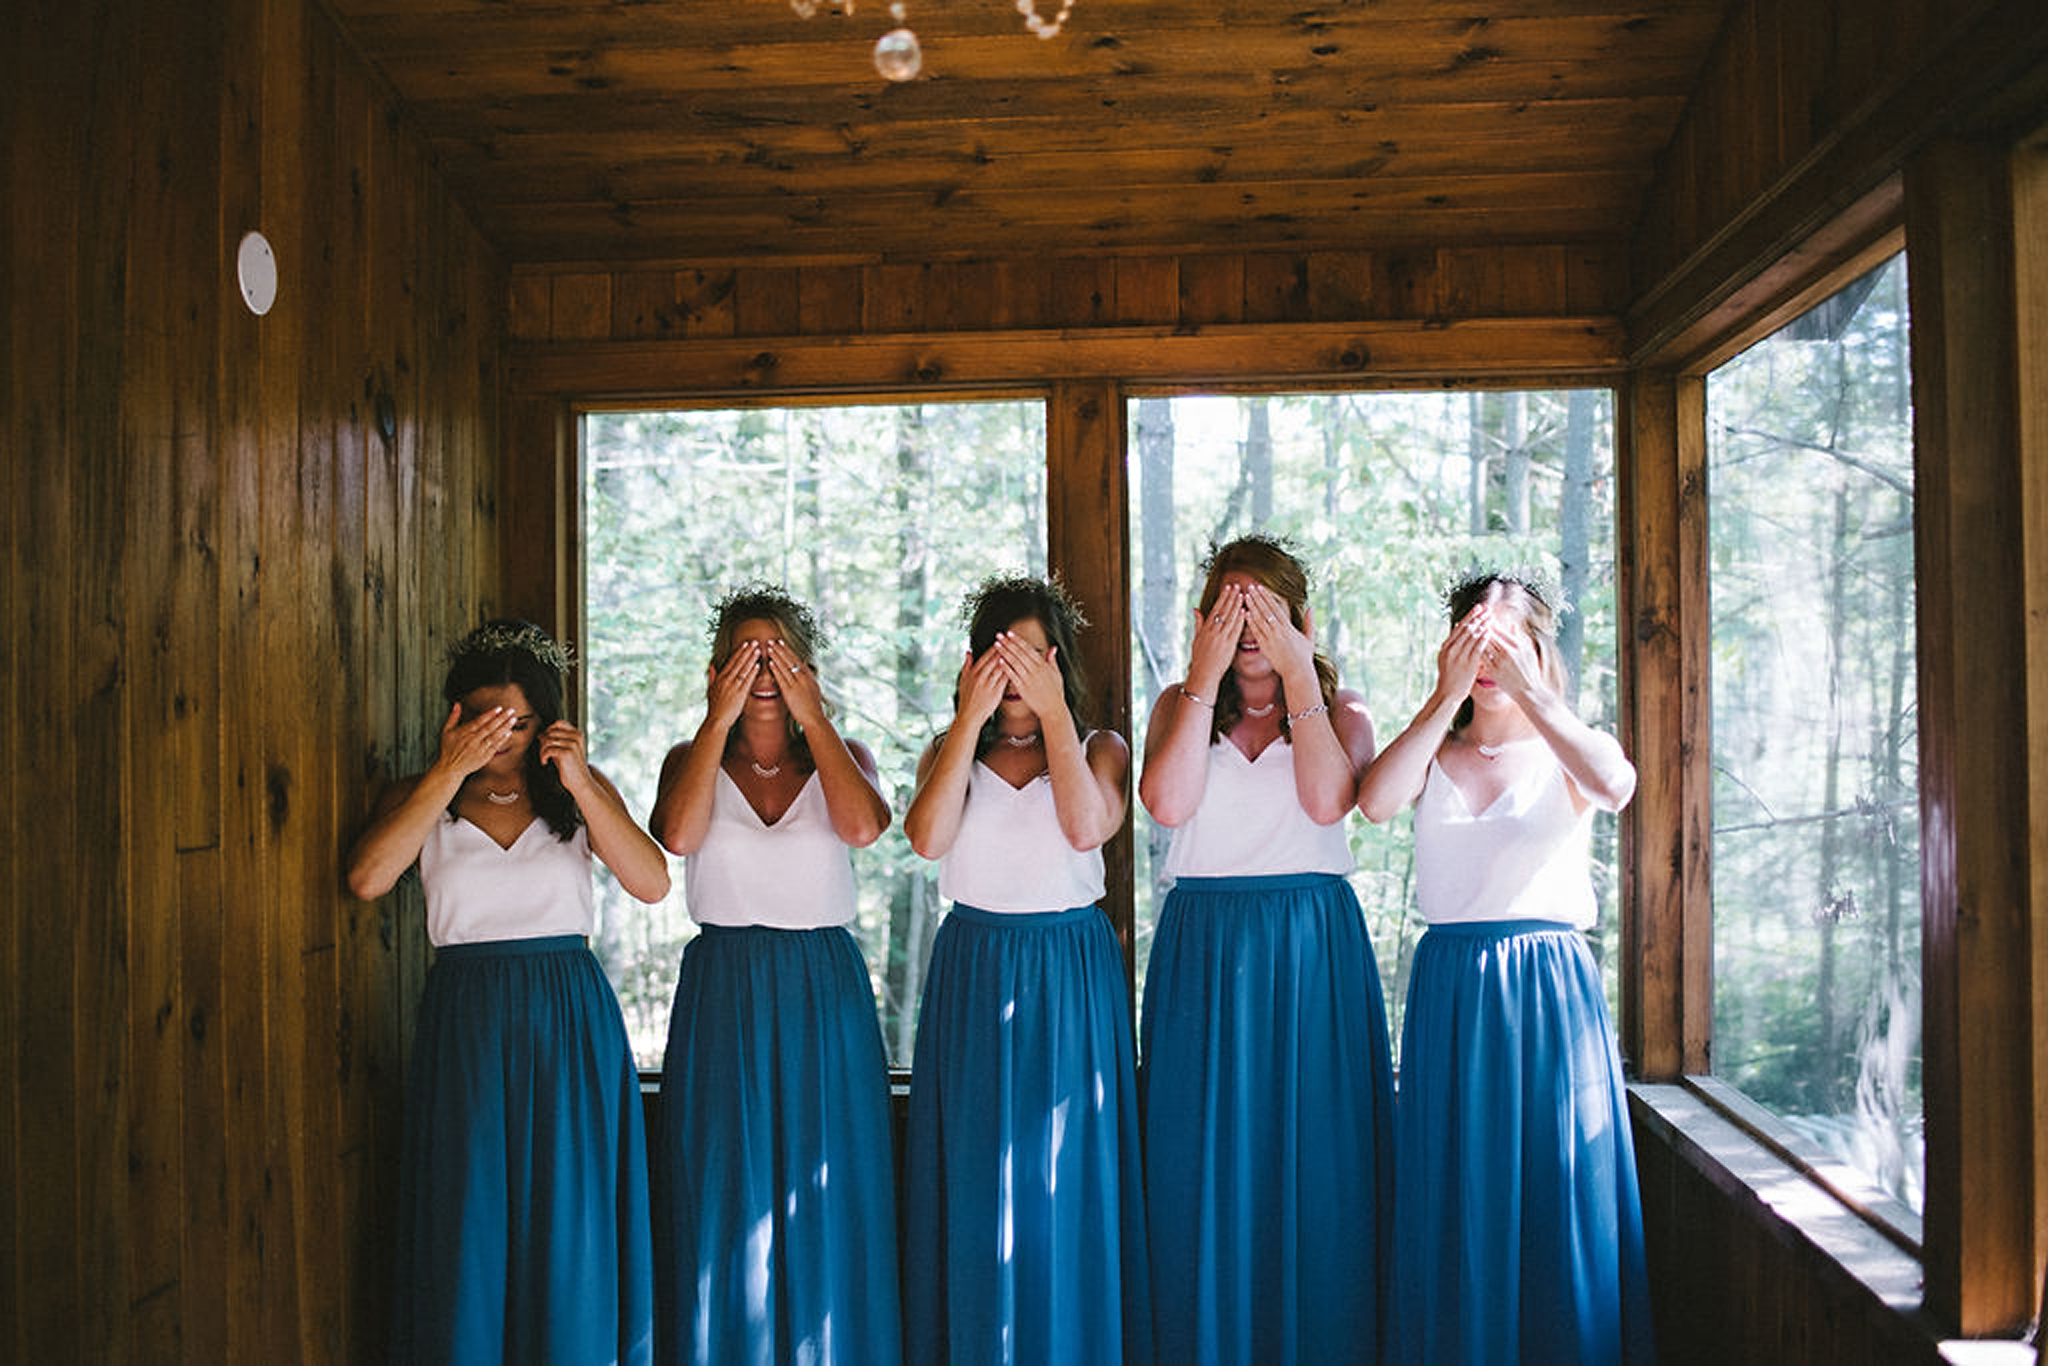 Bridesmaids wearing blue skirts and white camisoles